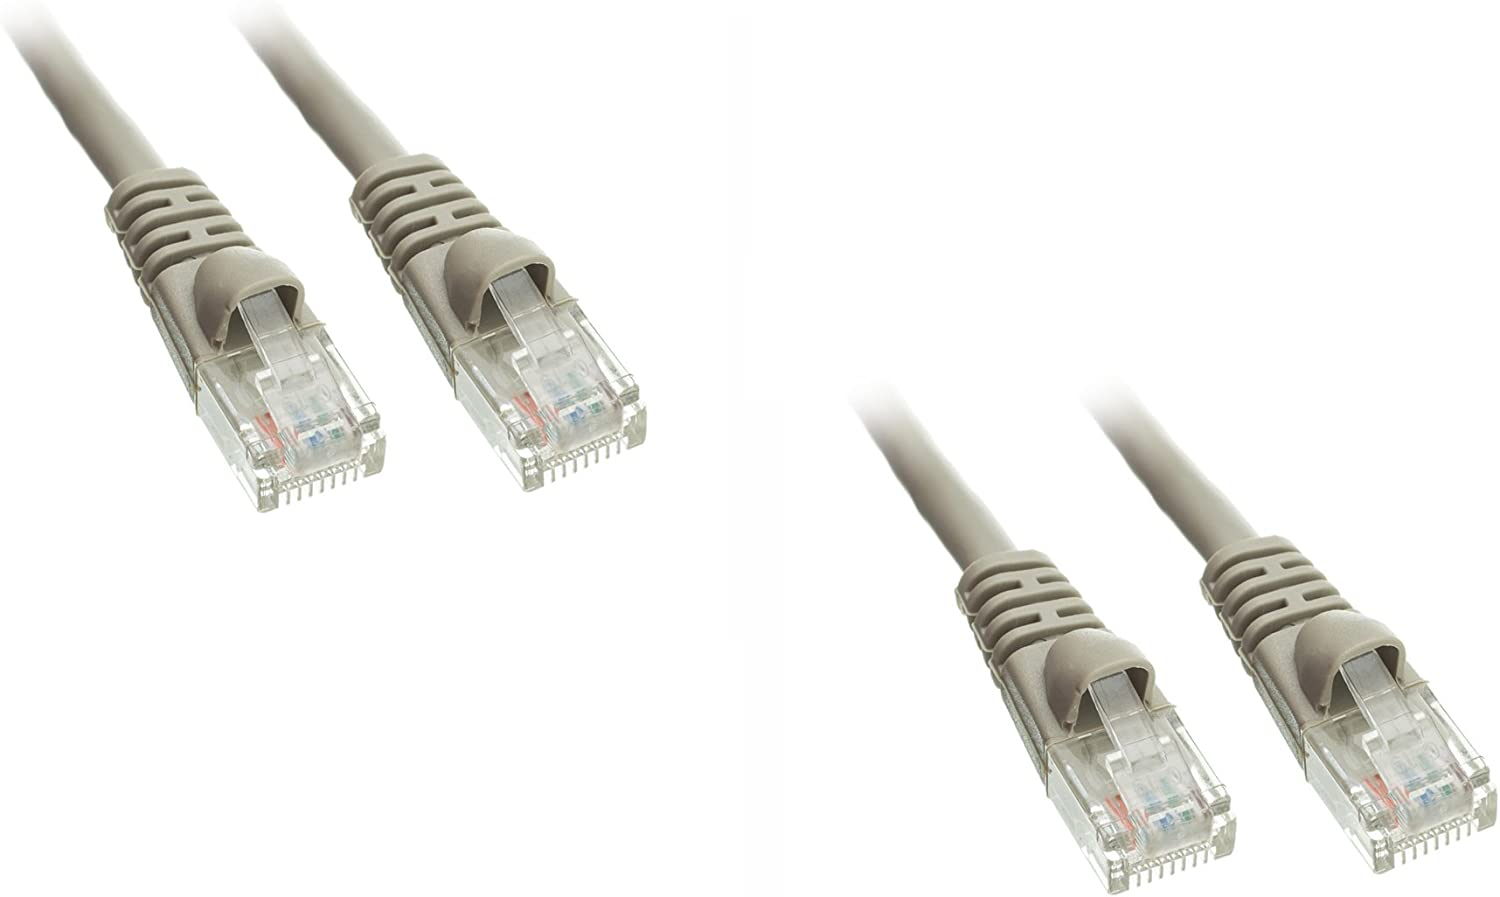 2 Pack eDragon Cat5e Ethernet Patch Cable with Snagless//Molded Boot, Gray, 1 Feet//0.3 Meters